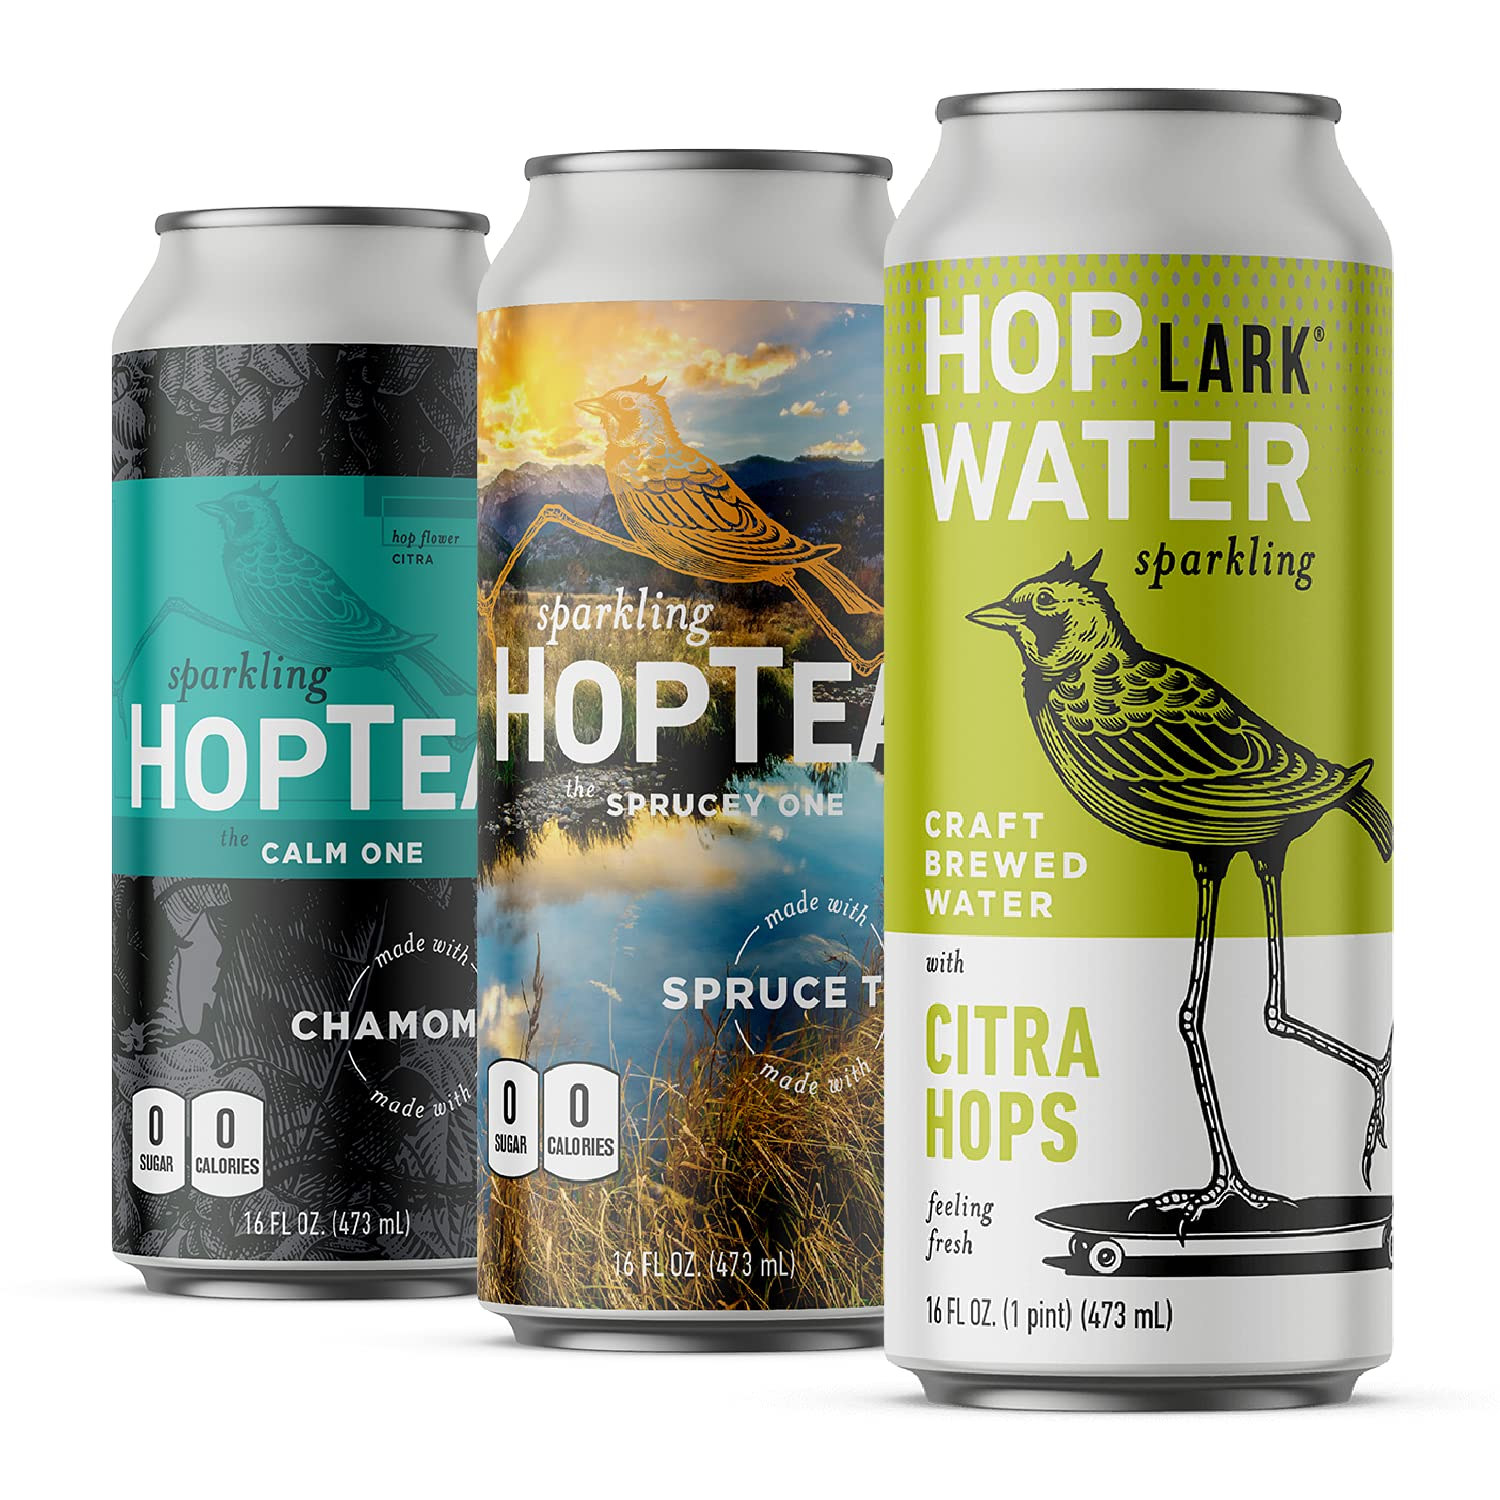 HOPLARK Sparkling HopTea - The Daily bargain sale Relax Craf Pack Limited price 12 Cans 16oz